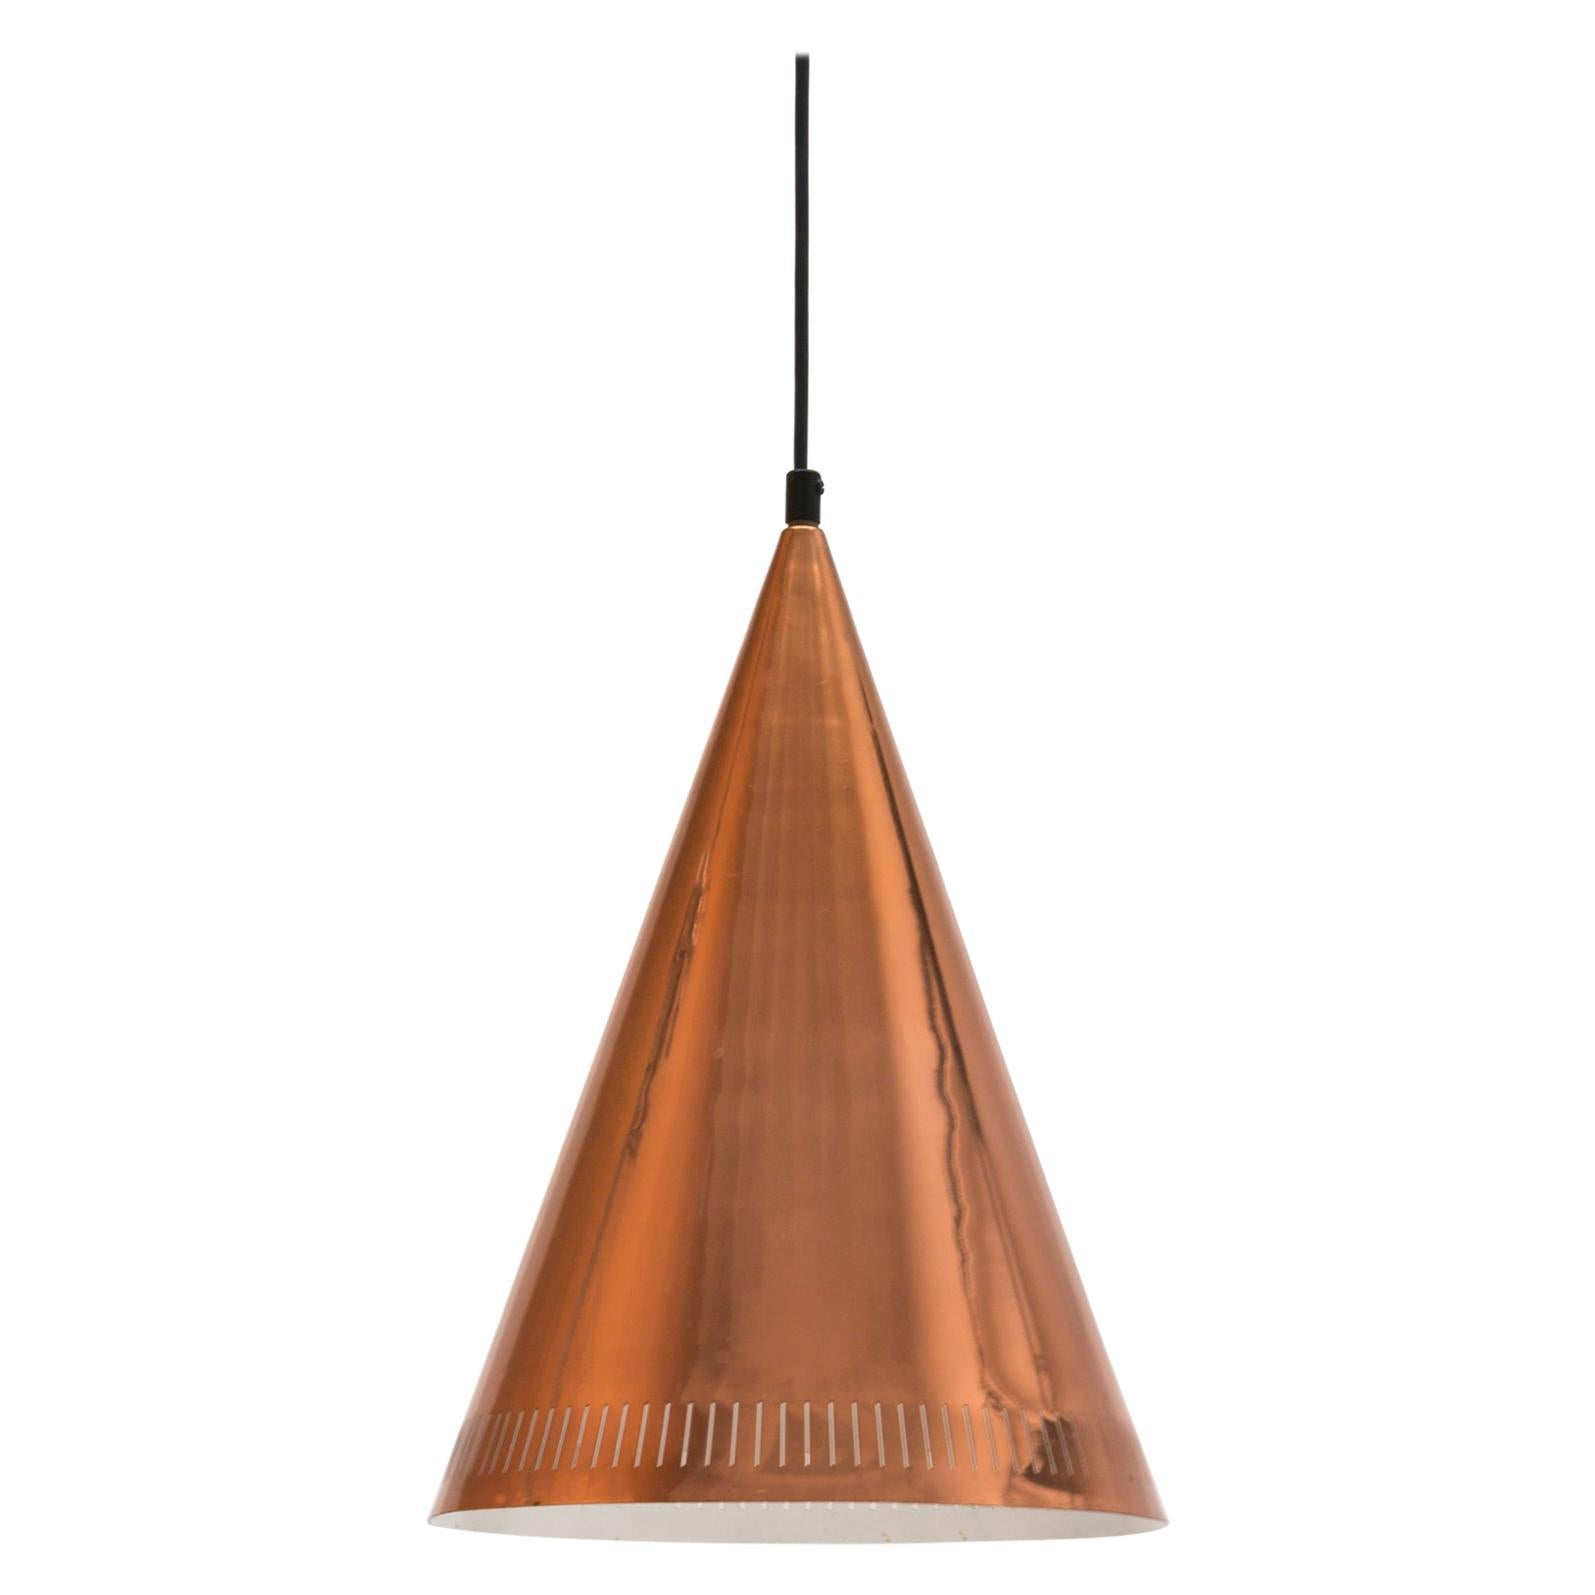 Large Scandinavian Modern Copper Cone Pendant Light by Falkenbergs, Sweden 1950s